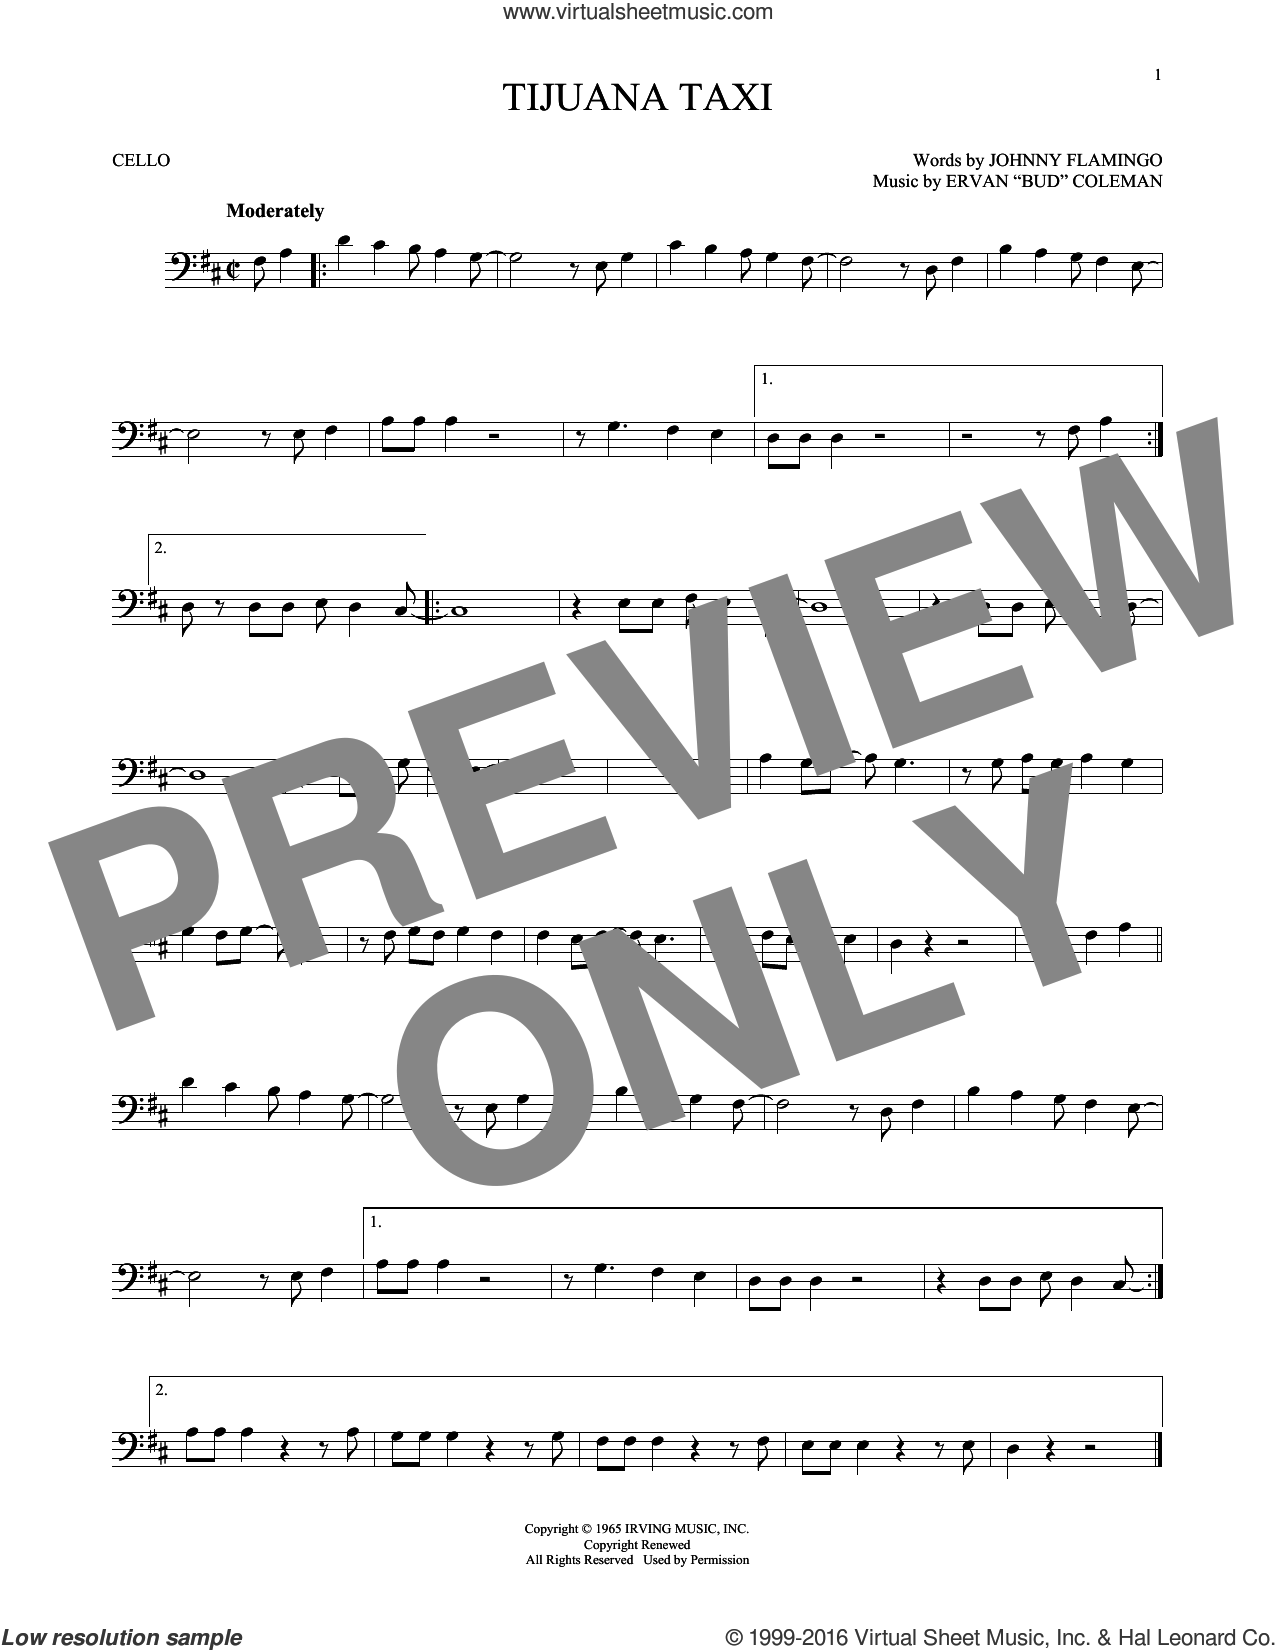 Tijuana Taxi sheet music for cello solo by Johnny Flamingo and Ervan